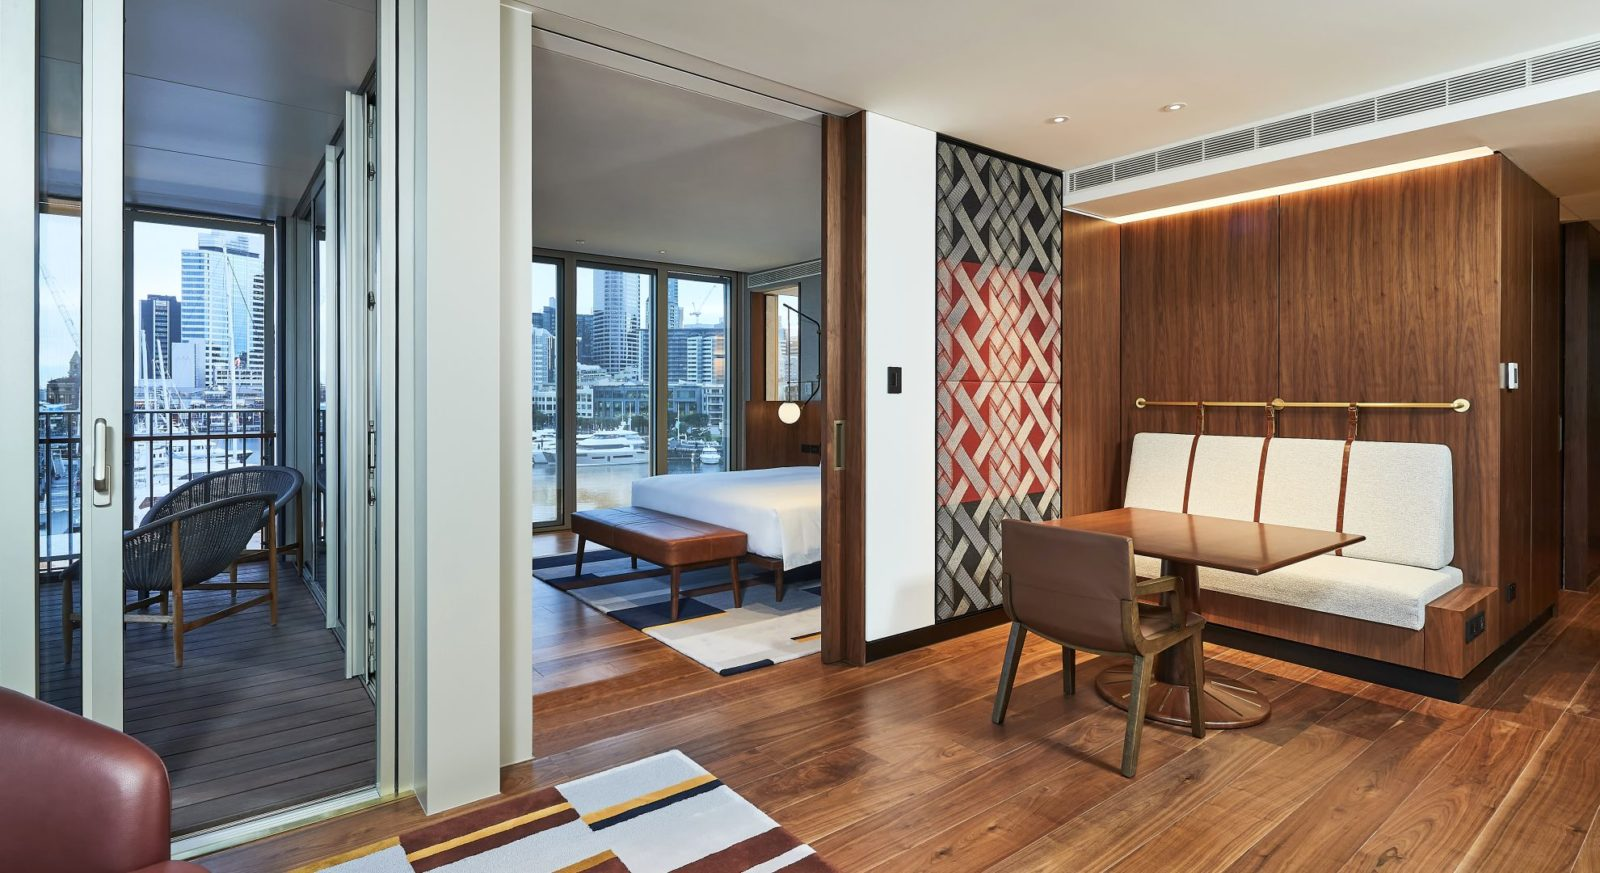 Park Hyatt to open inaugural New Zealand property in Auckland this September